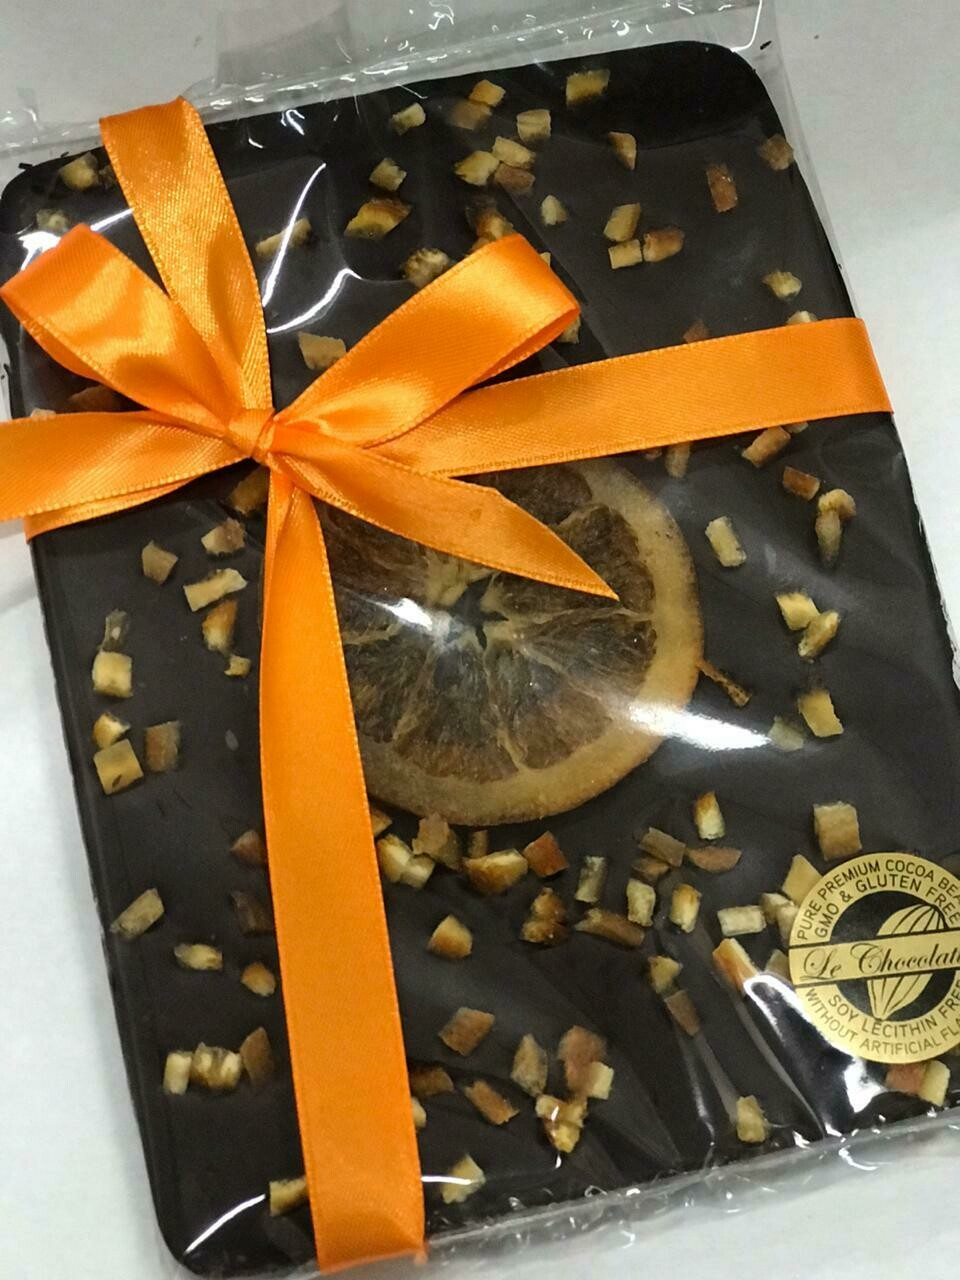 Artisan Orange Valencia - 70% Dark Orange Chocolate with Dried Oranges 120g